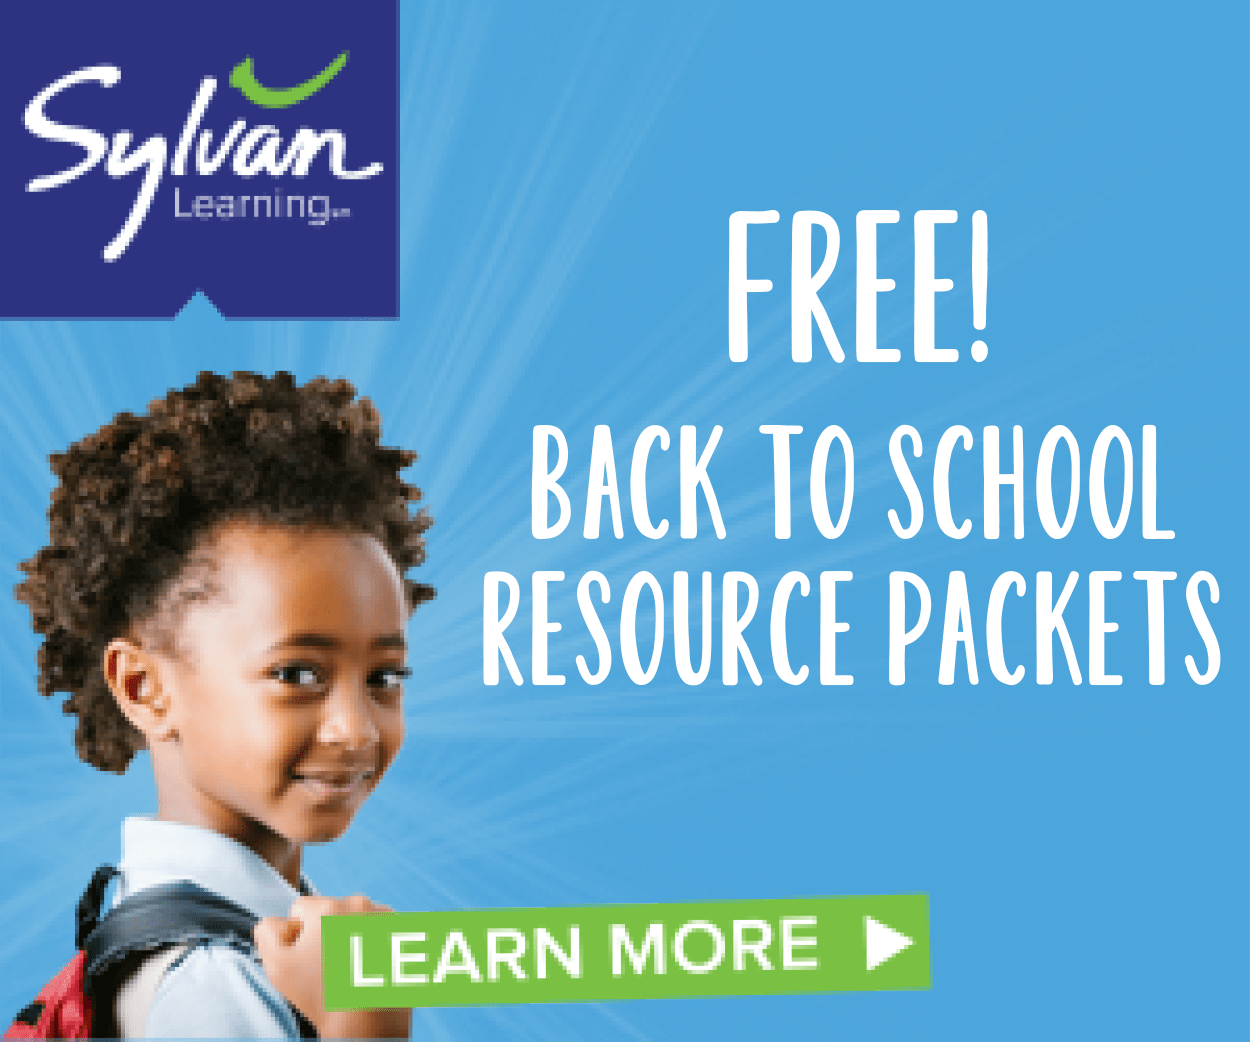 BacktoSchoolResourcePacket-min